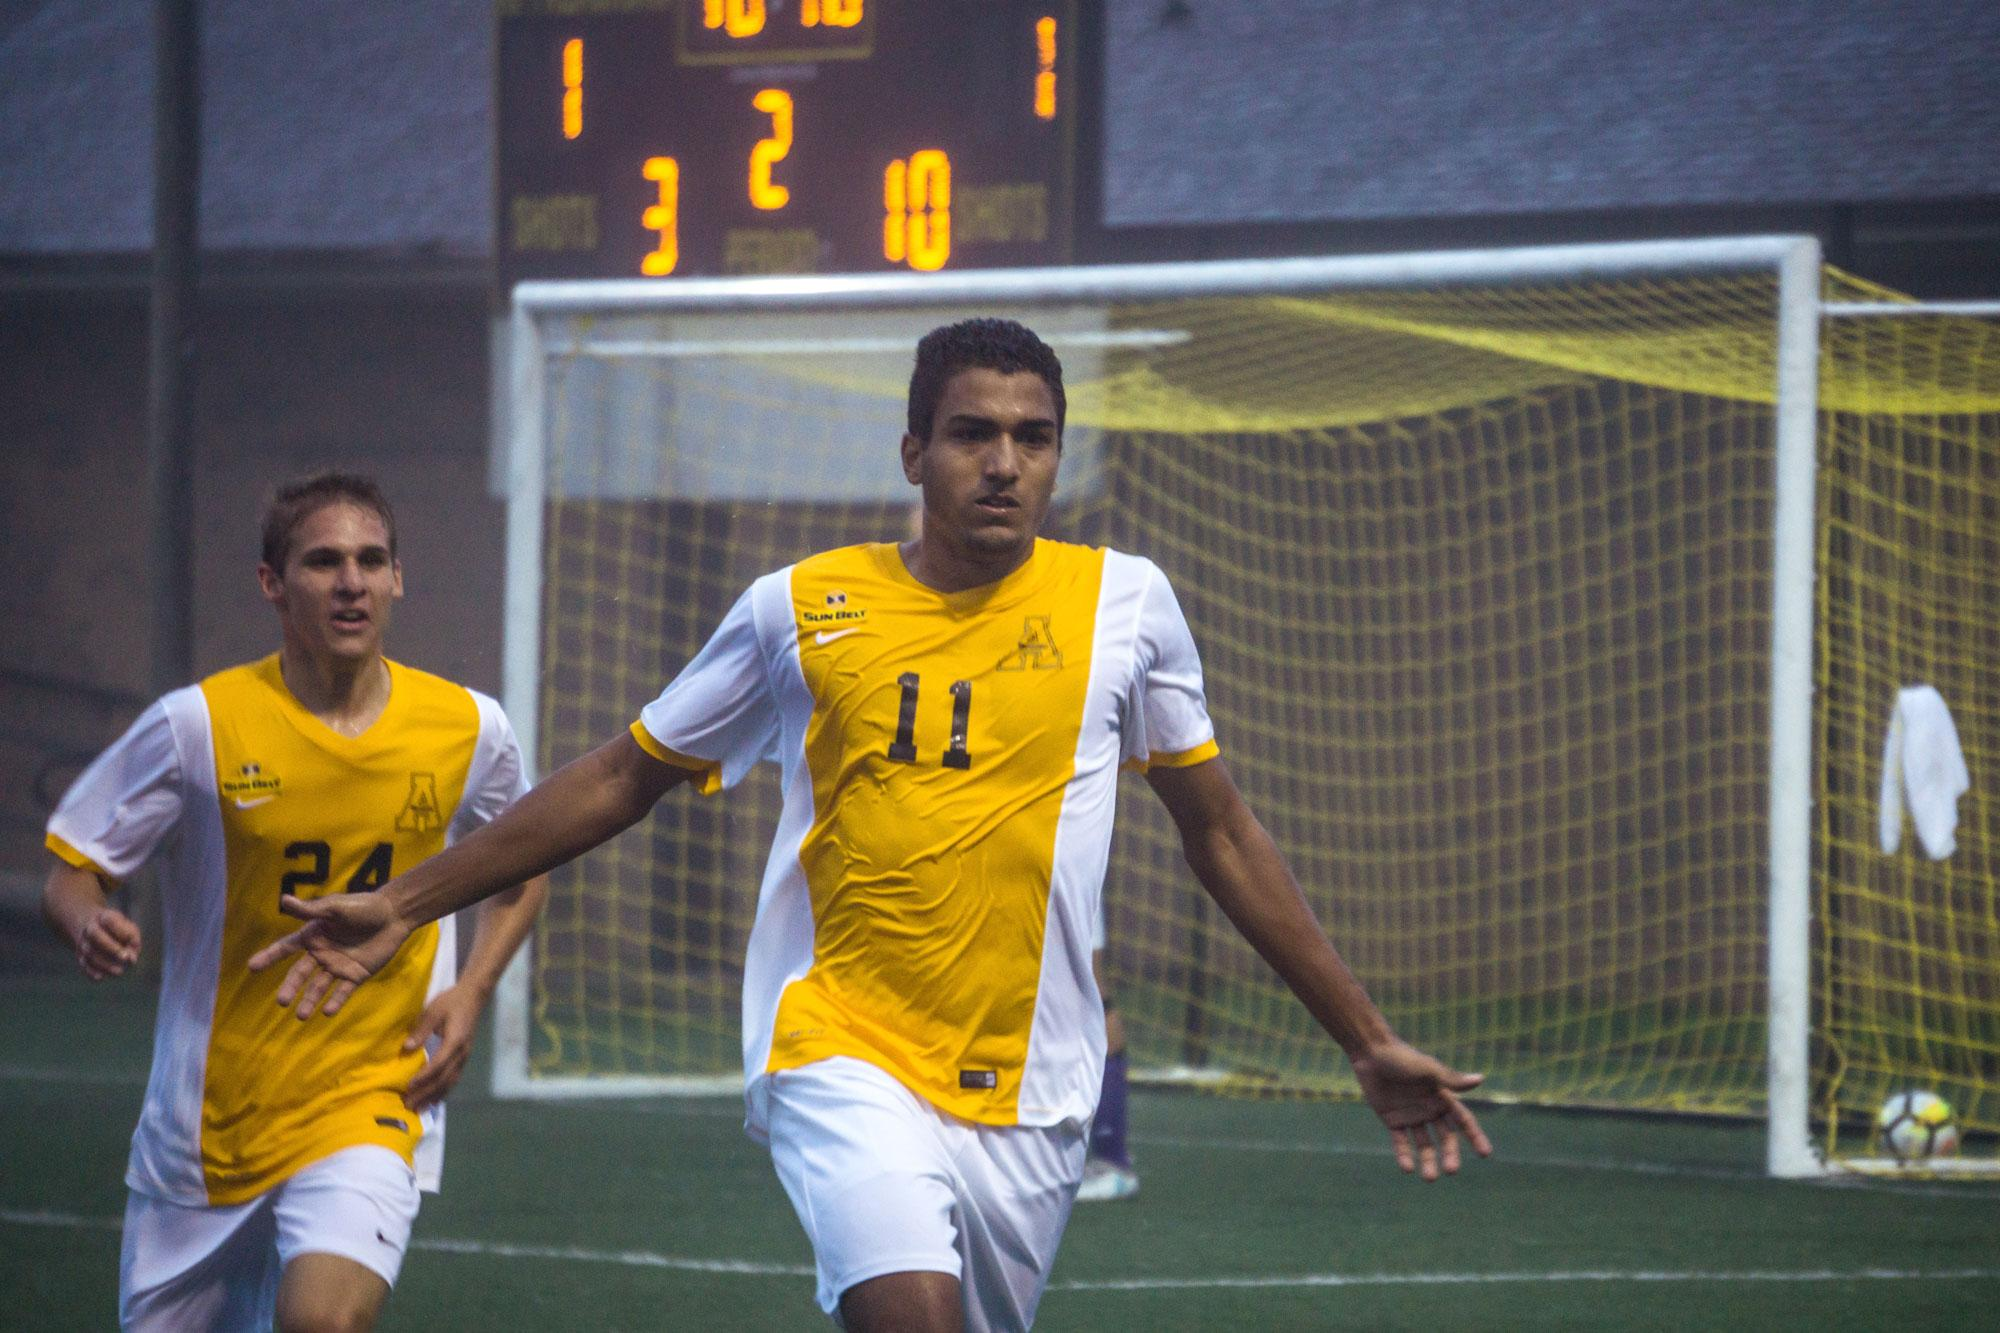 Defensive battles end in undefeated weekend for men's soccer